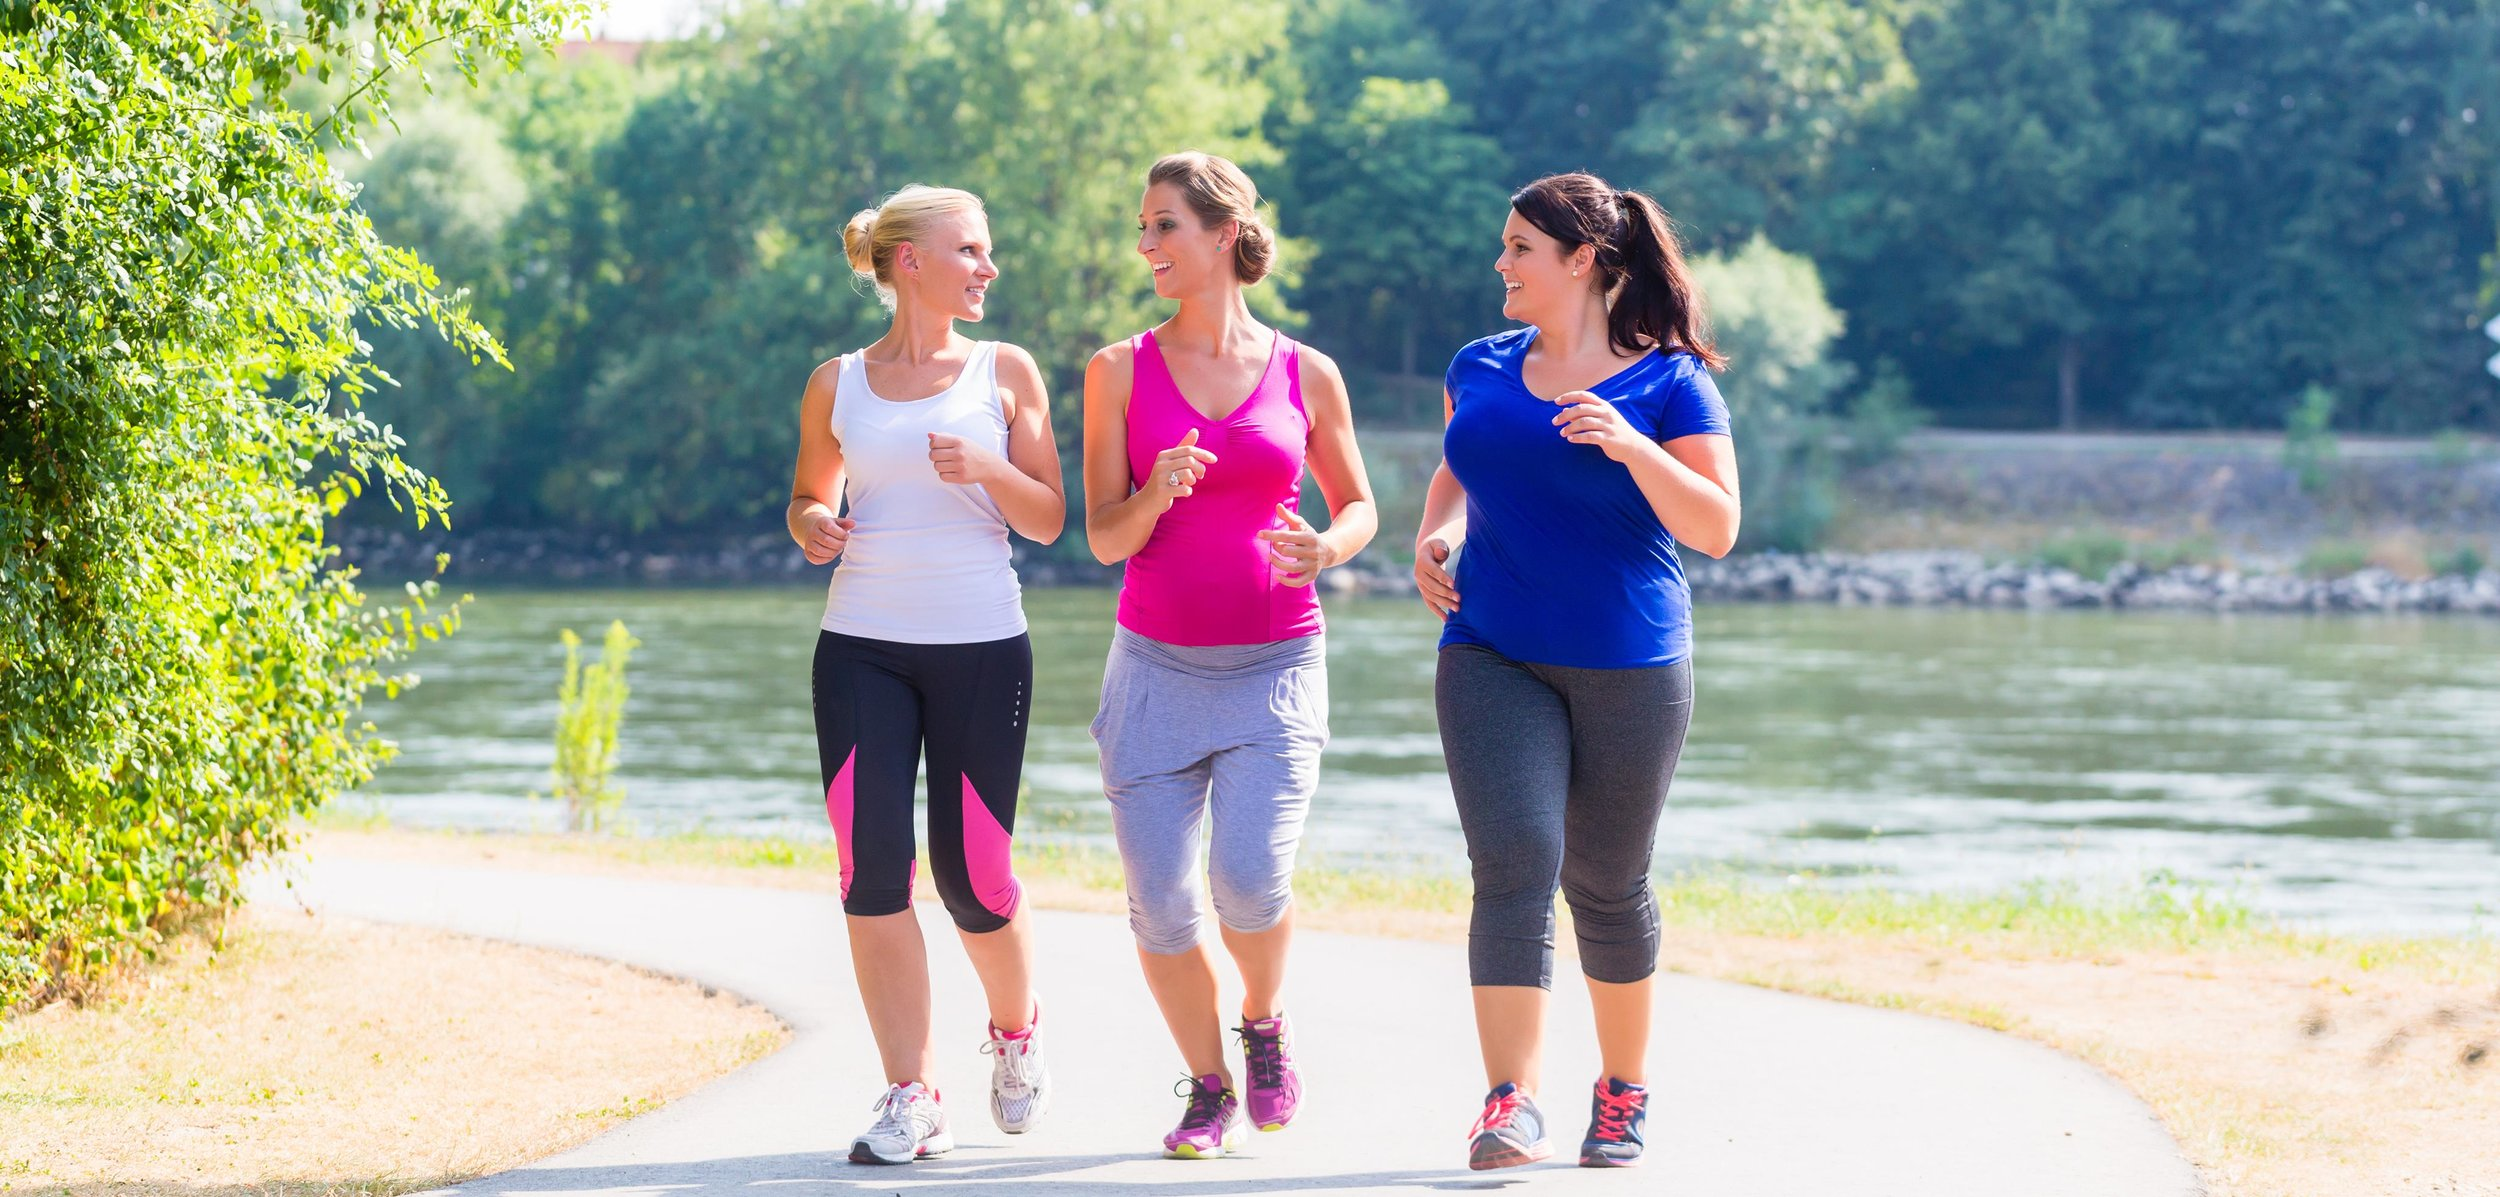 Should you continue running? Think about the risk versus the reward.